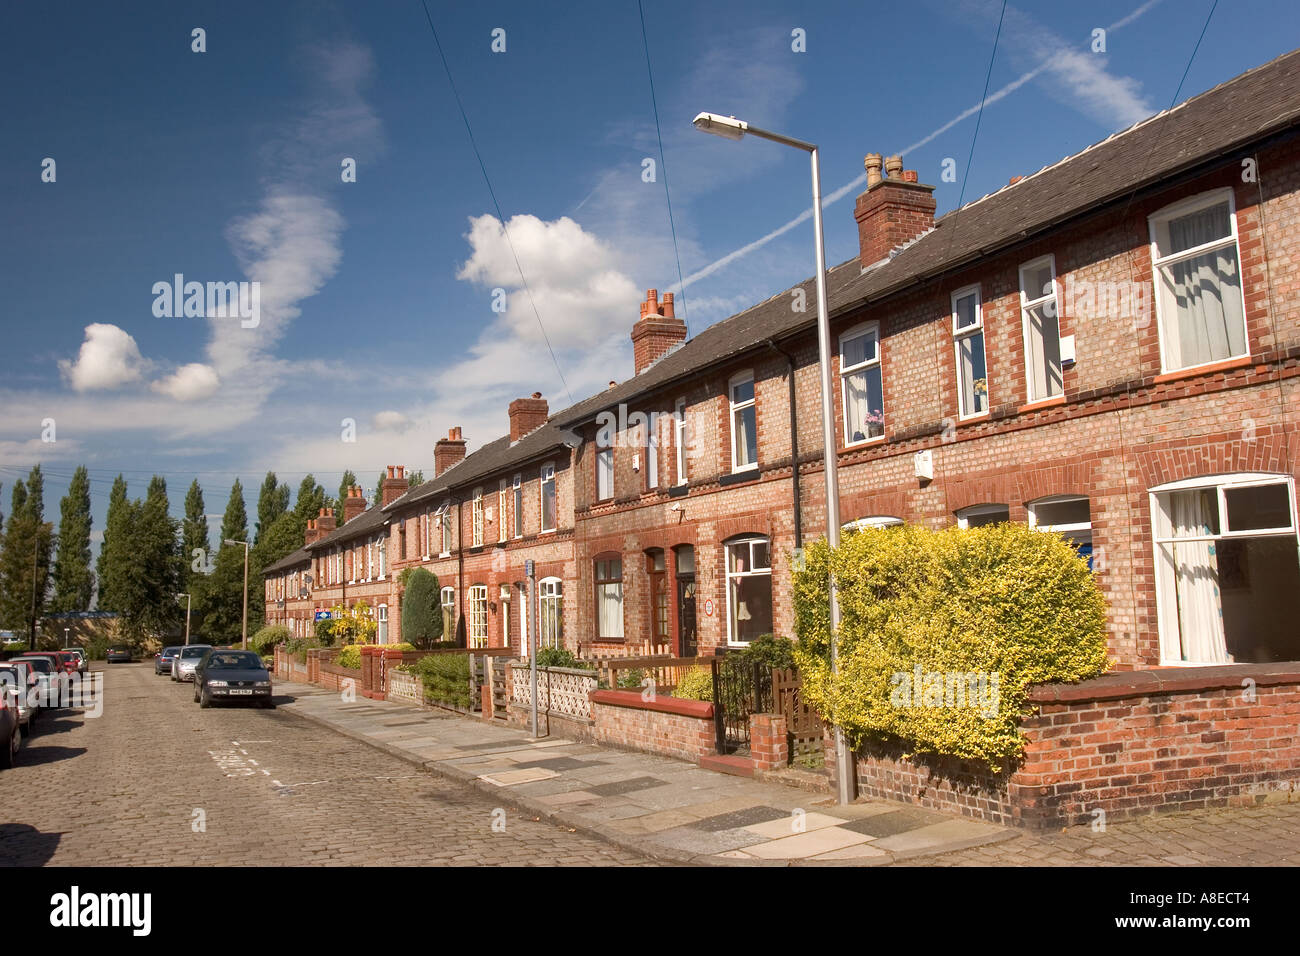 Cheshire Stockport Heaton Mersey Poplar Street - Stock Image